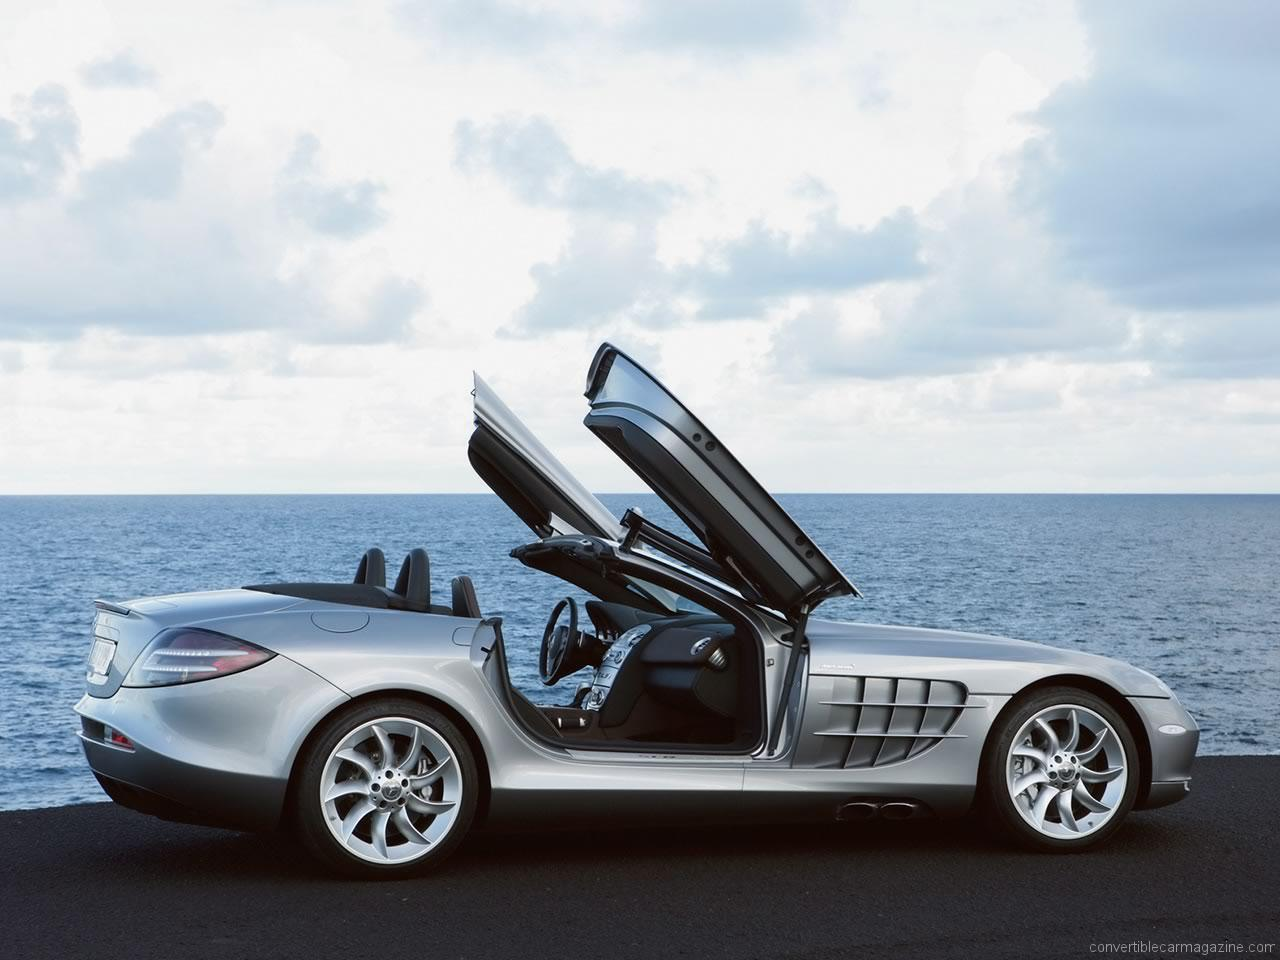 Mercedes benz mclaren slr roadster buying guide for Mercedes benz cars photos